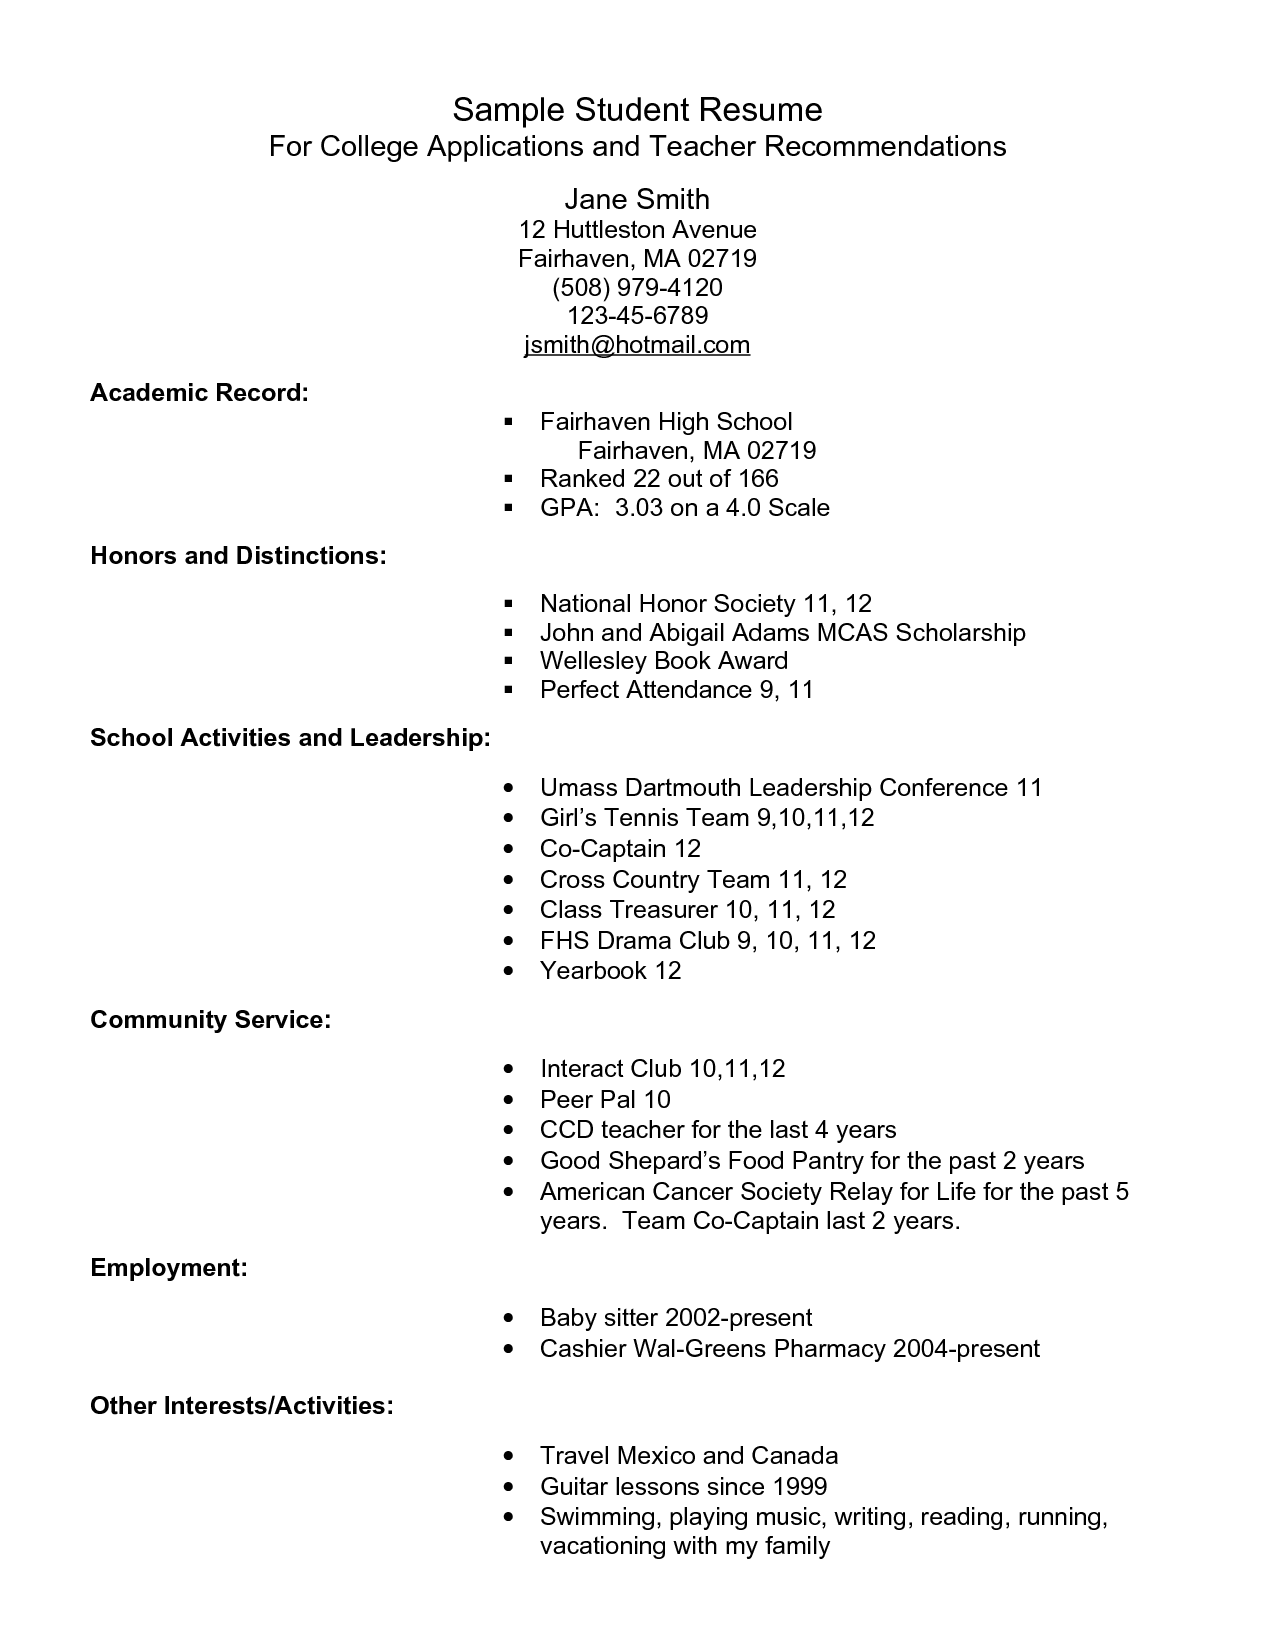 Resume Templates For High School Students Example Resume For High School Students For College Applications